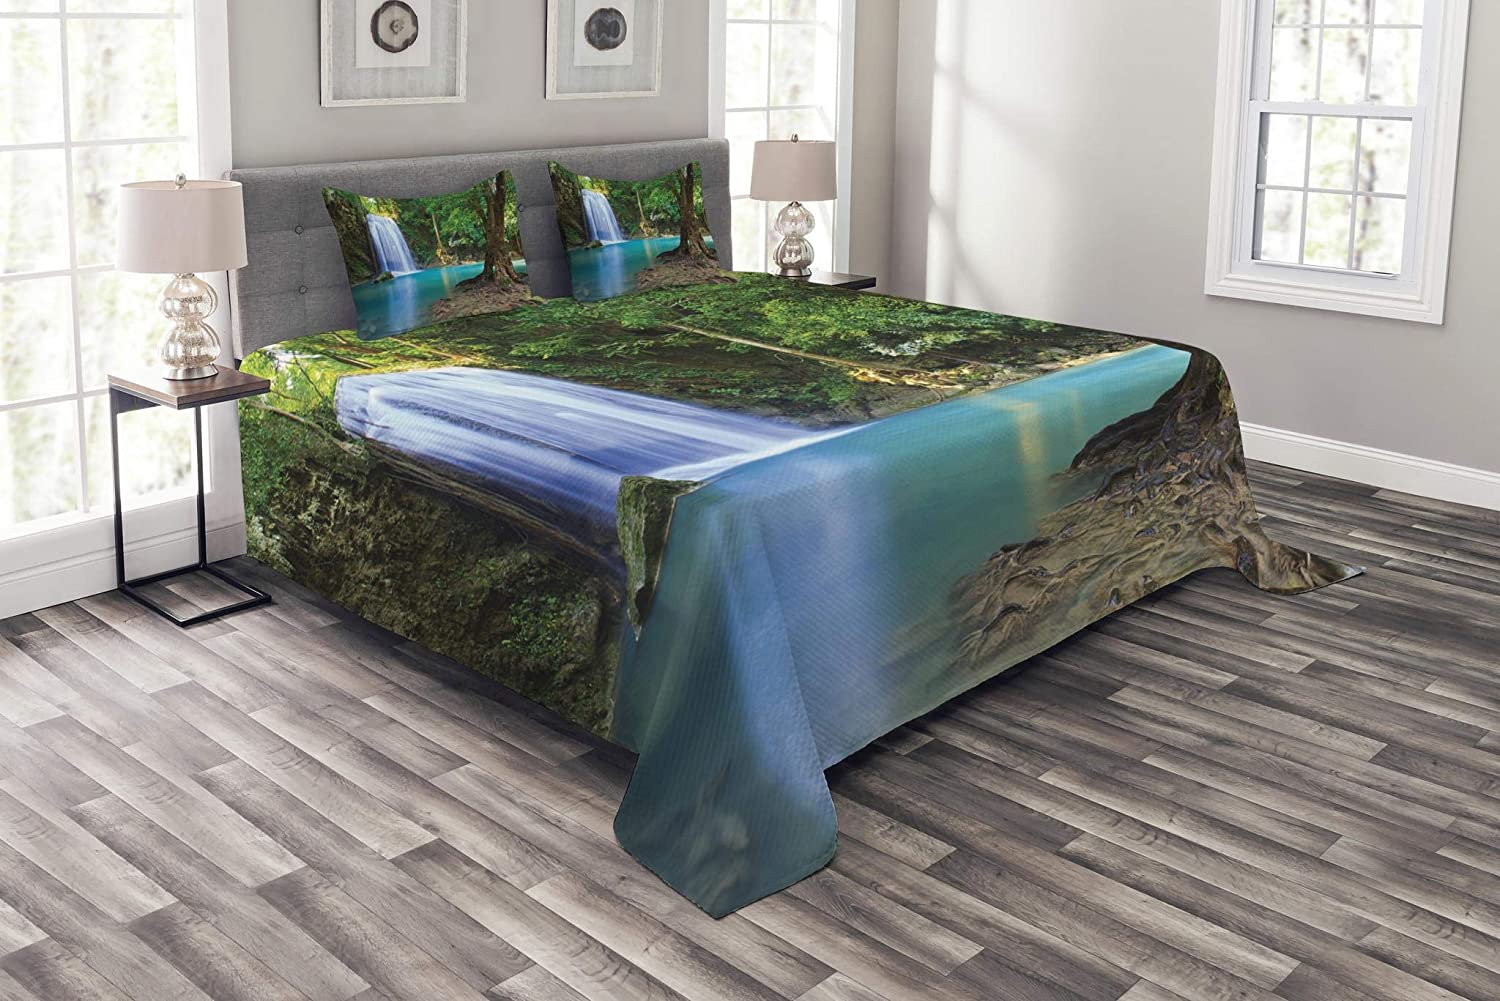 Ambesonne Woodland Bedspread, Waterfall Asia Thailand Jungle Tropic Plants Trees Tourist Attraction, Decorative Quilted 3 Piece Coverlet Set with 2 Pillow Shams, Queen Size, Turquoise Green